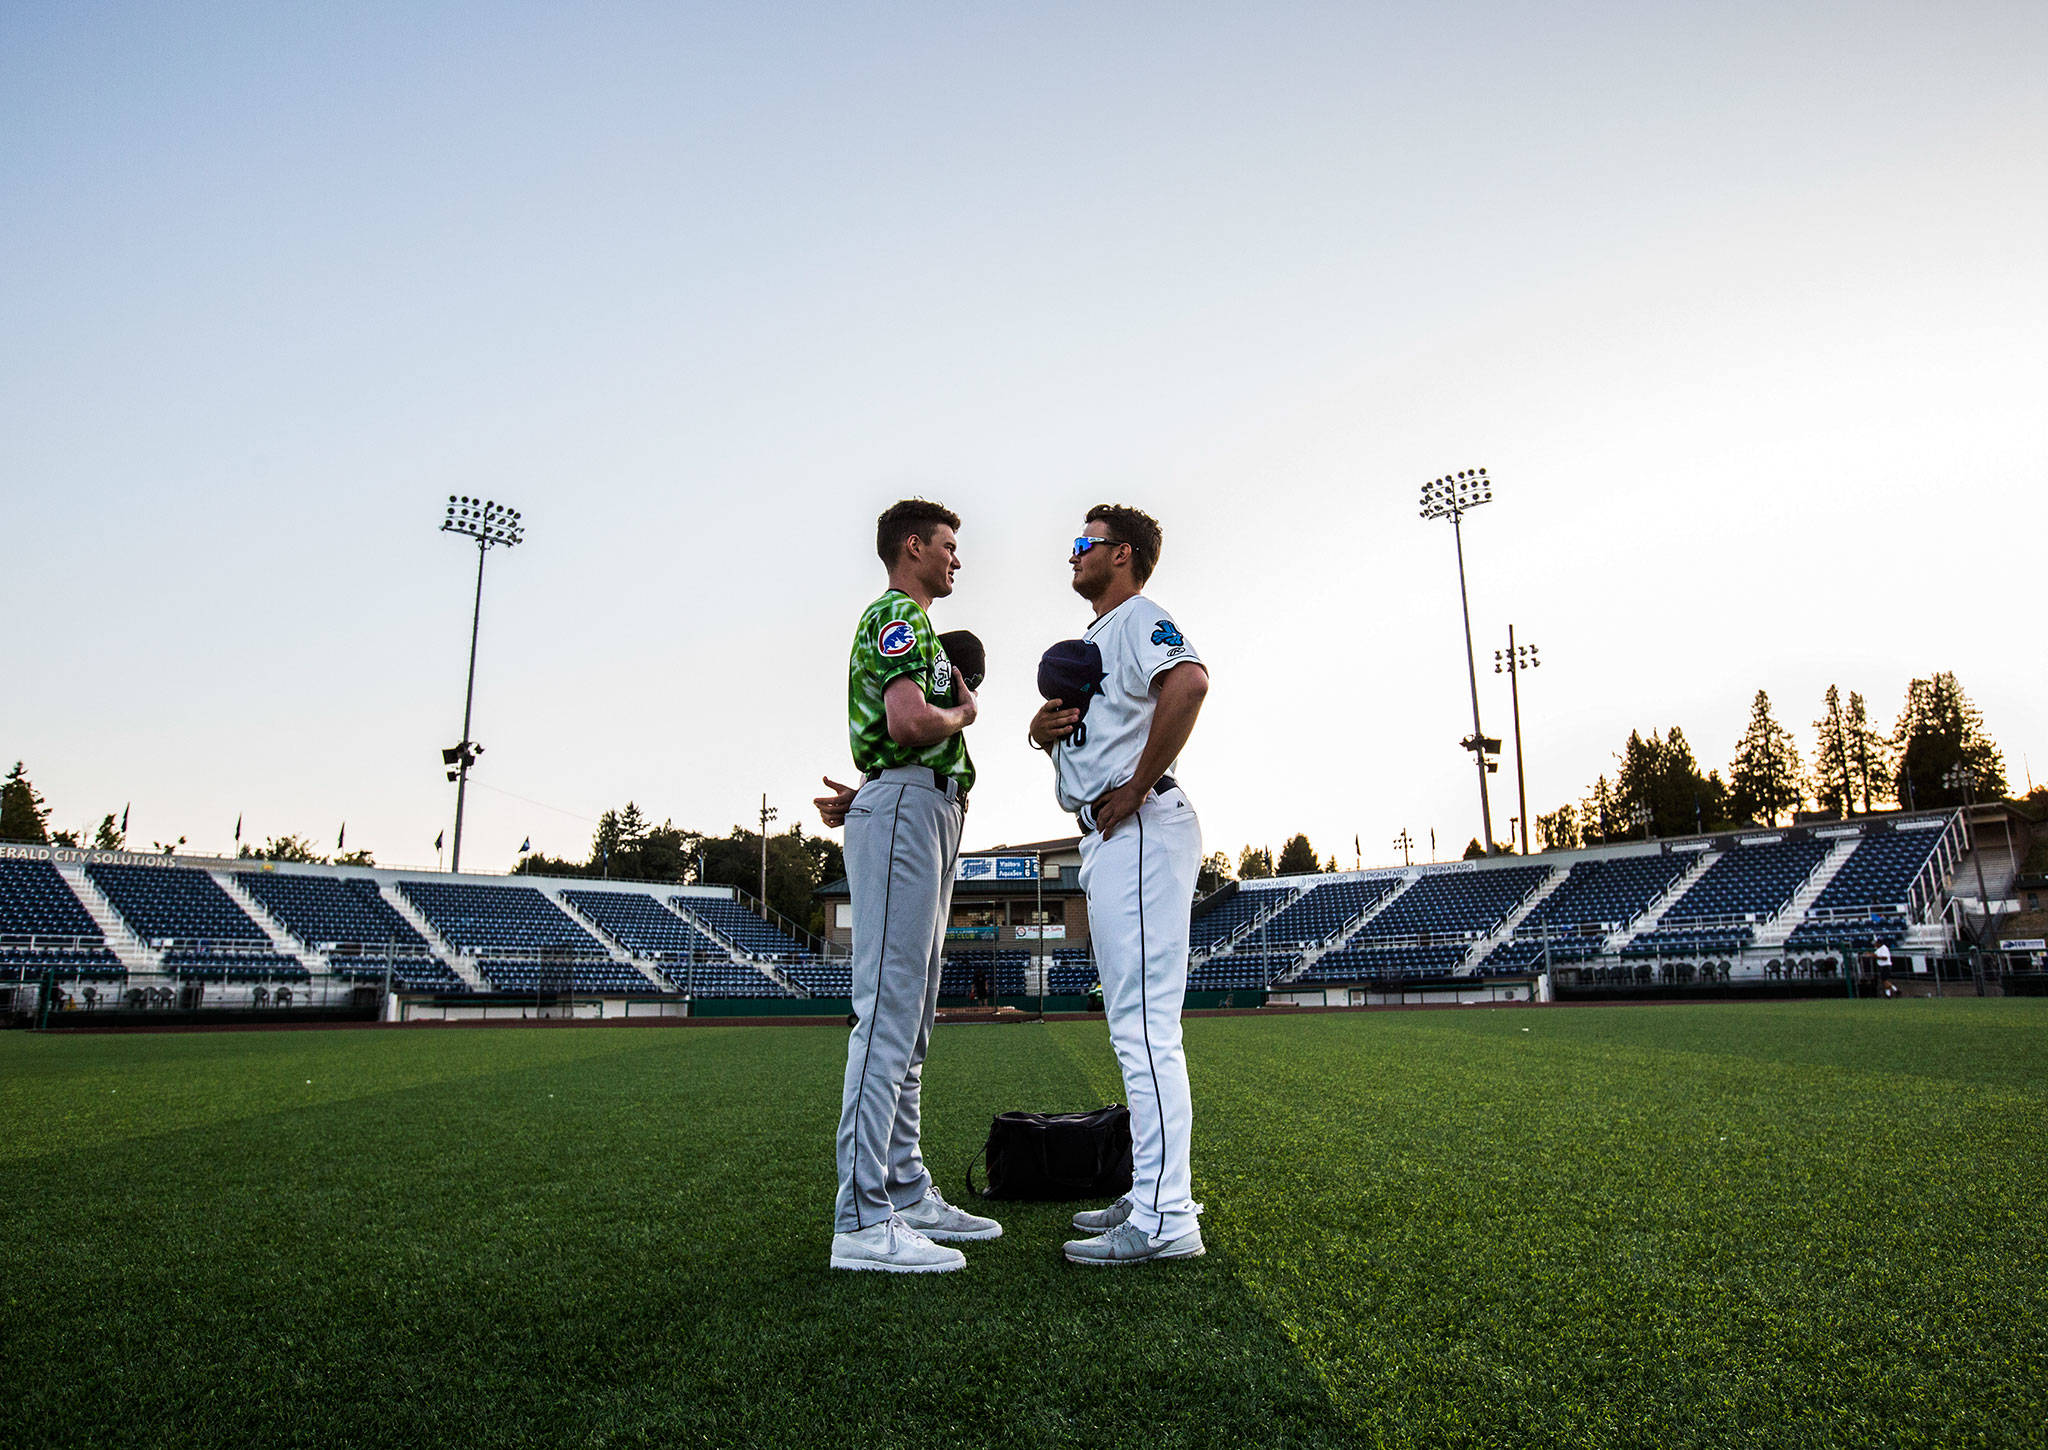 AquaSox's Travis Kuhn and Emerald's Ryan Jensen were still standing an hour after the game between the two teams Aug. 25 in salute to the National Anthem at Funko Field in Everett. (Olivia Vanni / The Herald) (Olivia Vanni / The Herald)